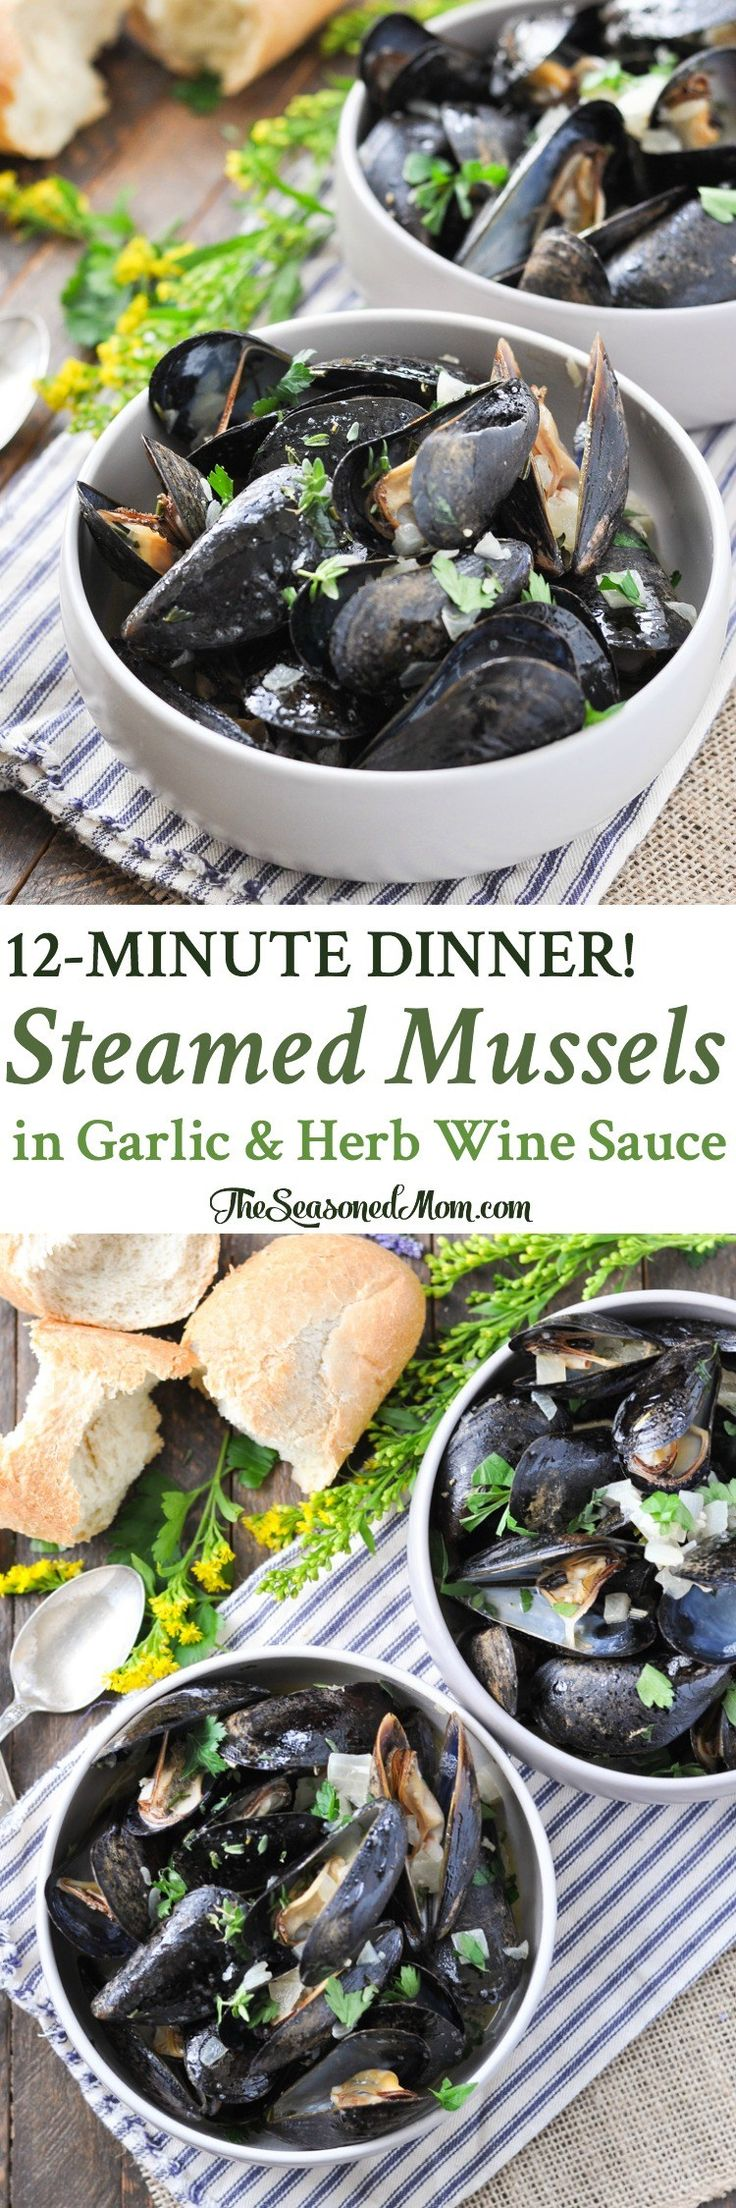 Mussel recipes easy